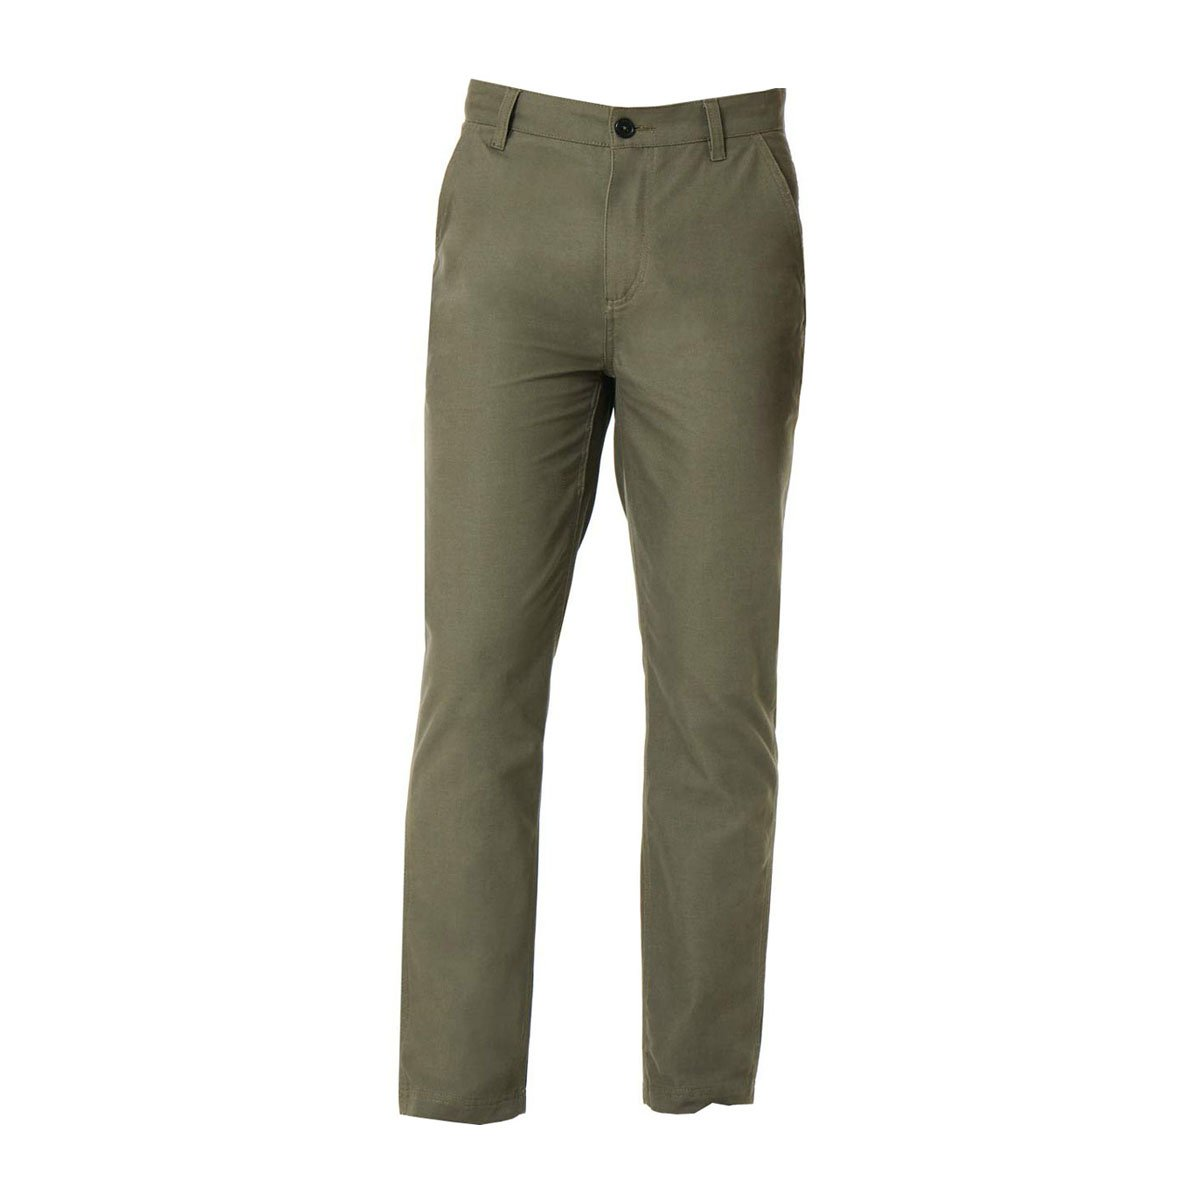 ICON WORKER PANTS